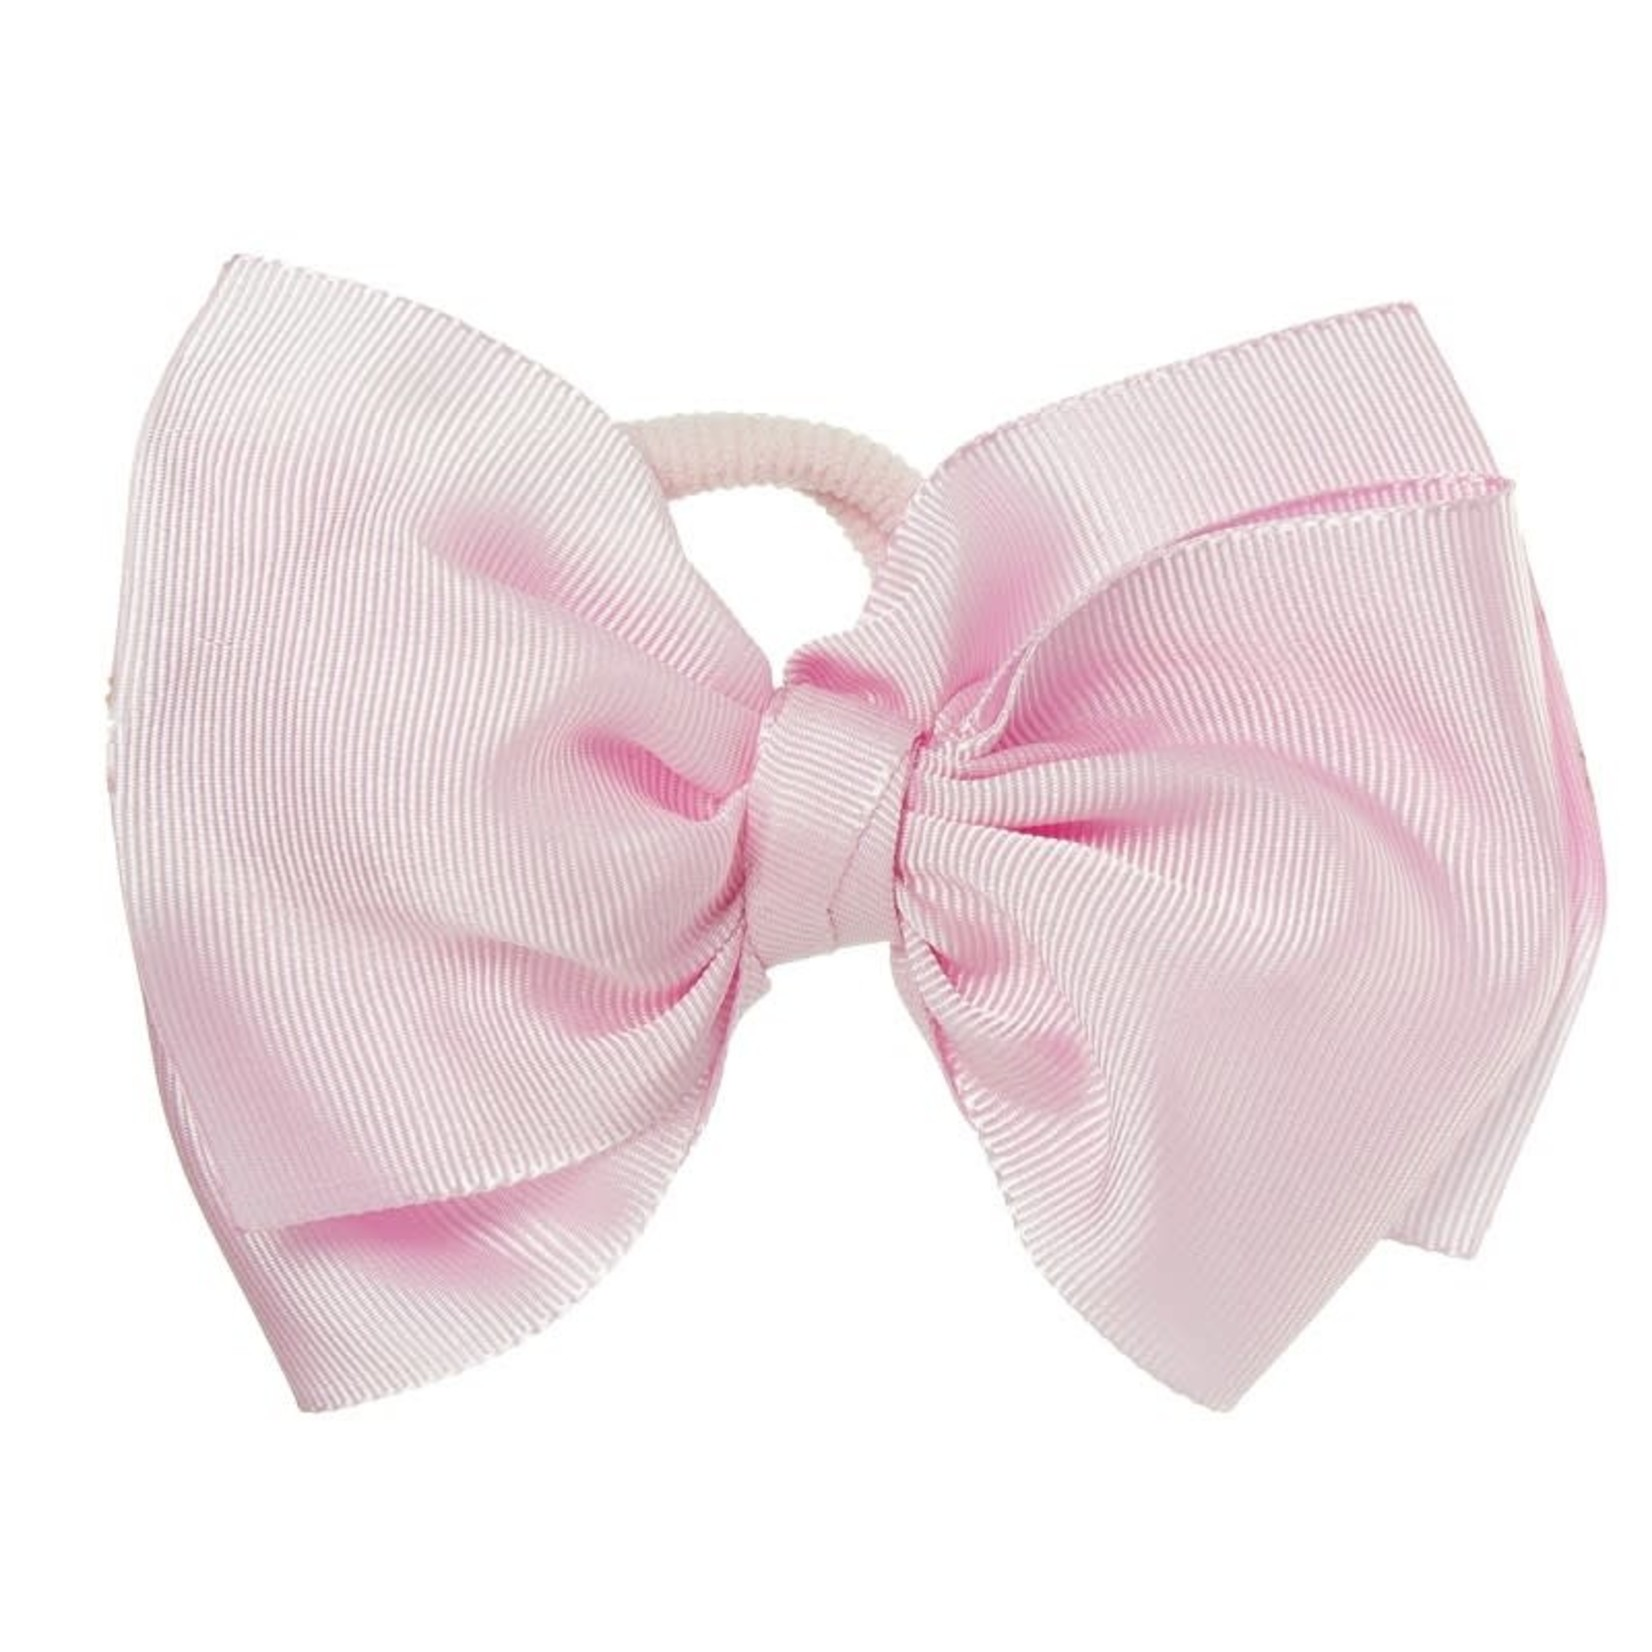 Siena Copy of Hair Bow - Baby Blue